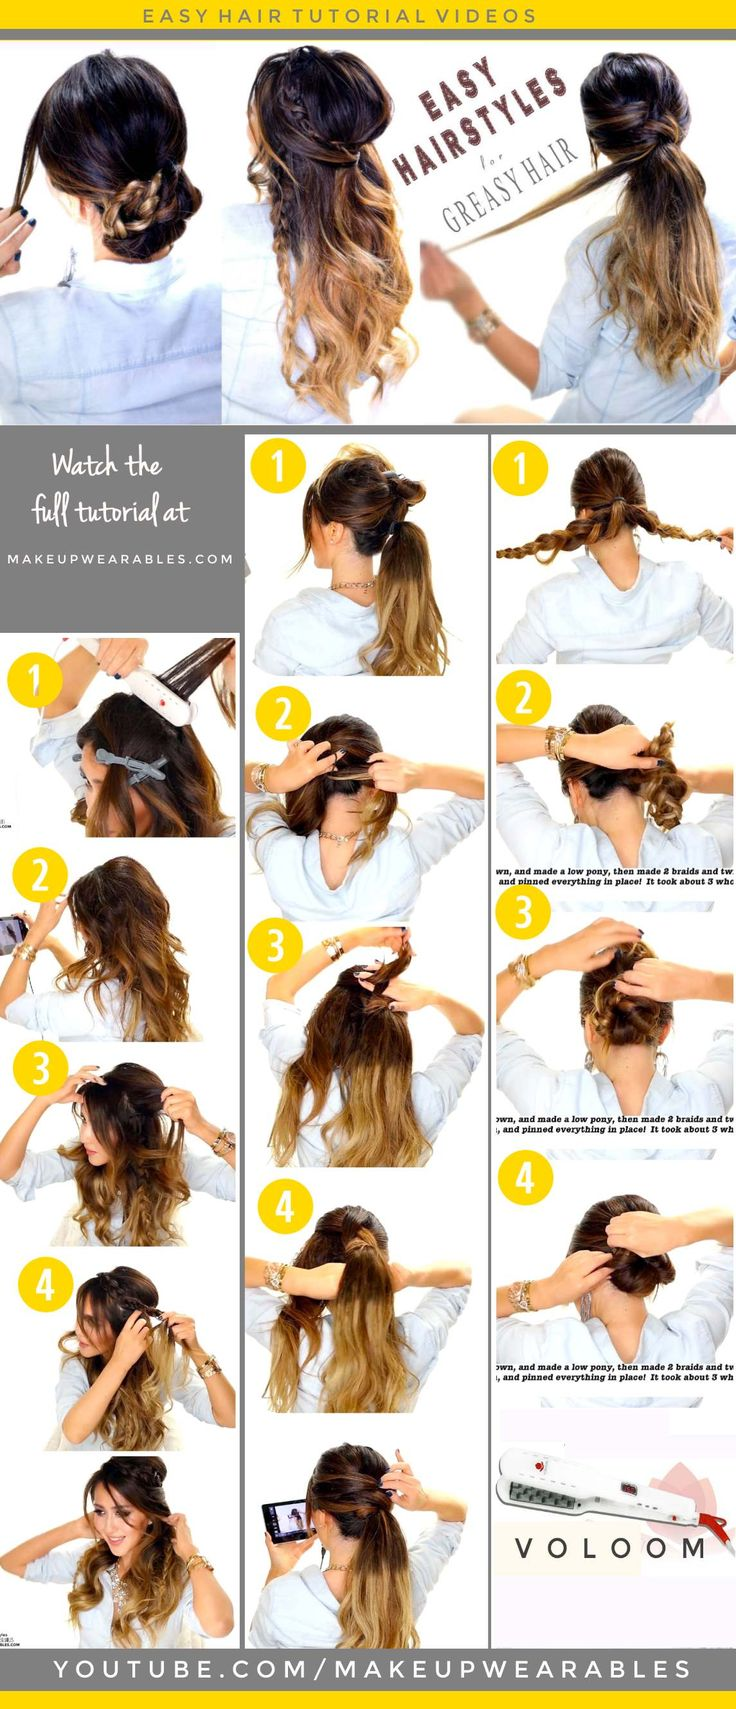 Formal hairstyles hair for special events hairstyles polyvore - Easy Updo Hairstyles For Dirty Greay Hair Everyday Braids Ponytail Messy Bun